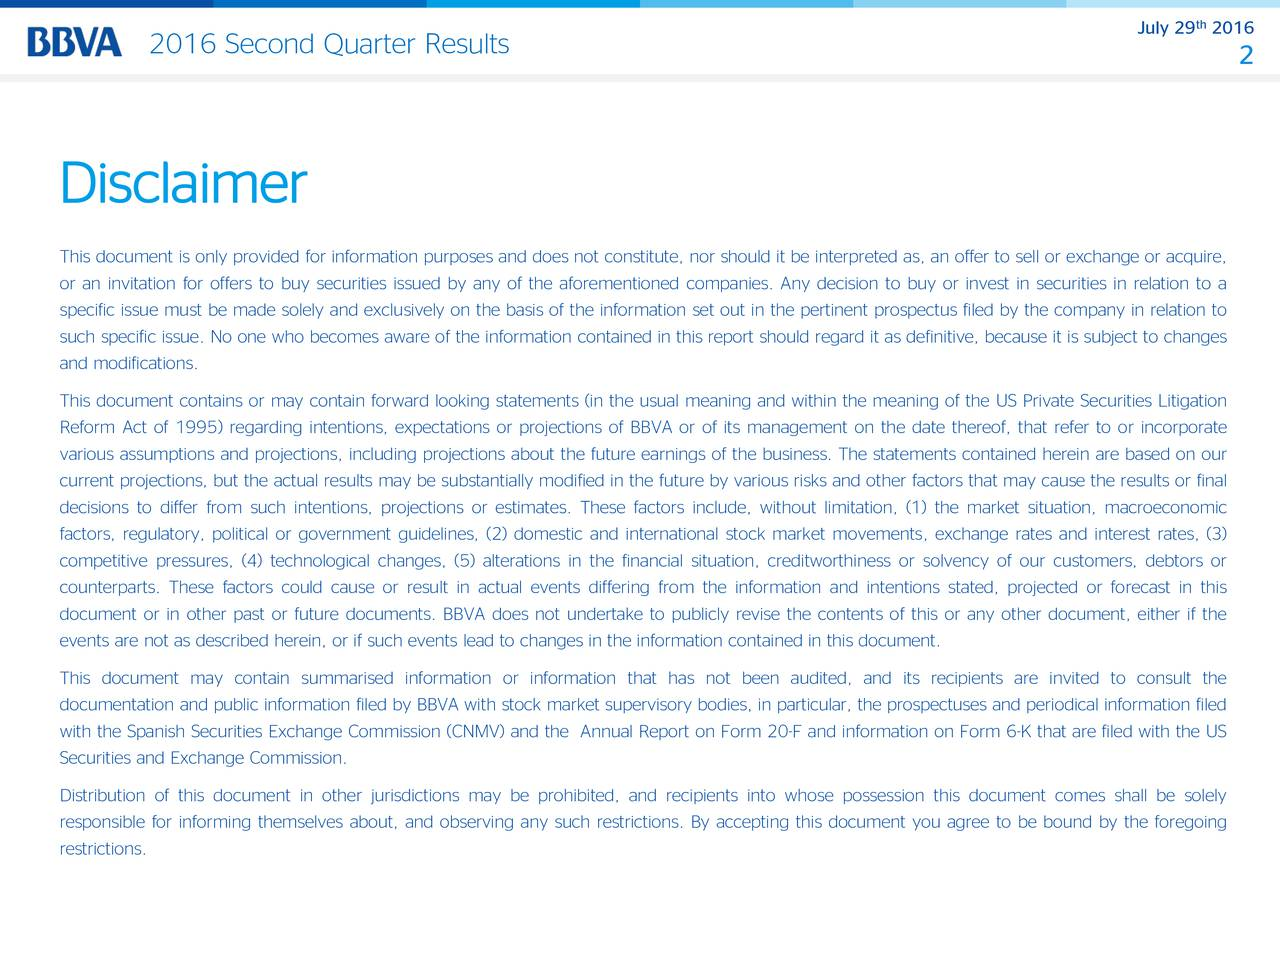 2016 Second Quarter Results 2 This document is only provided for information purposes and does not constitute, nor should it be interpreted as, an offer to sell or exchange or acquire, or an invitation for offers to buy securities issued by any of the aforementioned companies. Any decision to buy or invest in securities in relation to a specific issue must be made solely and exclusively on the basis of the information set out in the pertinent prospectus filed by the company in relation to such specific issue. No one who becomes aware of the information contained in this report should regard it as definitive, because it is subject to changes and modifications. This document contains or may contain forward looking statements (in the usual meaning and within the meaning of the US Private Securities Litigation Reform Act of 1995) regarding intentions, expectations or projections of BBVA or of its management on the date thereof, that refer to or incorporate various assumptions and projections, including projections about the future earnings of the business. The statements contained herein are based on our current projections, but the actual results may be substantially modified in the future by various risks and other factors that may cause the results or final decisions to differ from such intentions, projections or estimates. These factors include, without limitation, (1) the market situation, macroeconomic factors, regulatory, political or government guidelines, (2) domestic and international stock market movements, exchange rates and interest rates, (3) competitive pressures, (4) technological changes, (5) alterations in the financial situation, creditworthiness or solvency of our customers, debtors or counterparts. These factors could cause or result in actual events differing from the information and intentions stated, projected or forecast in this document or in other past or future documents. BBVA does not undertake to publicly revise the contents of this or any 